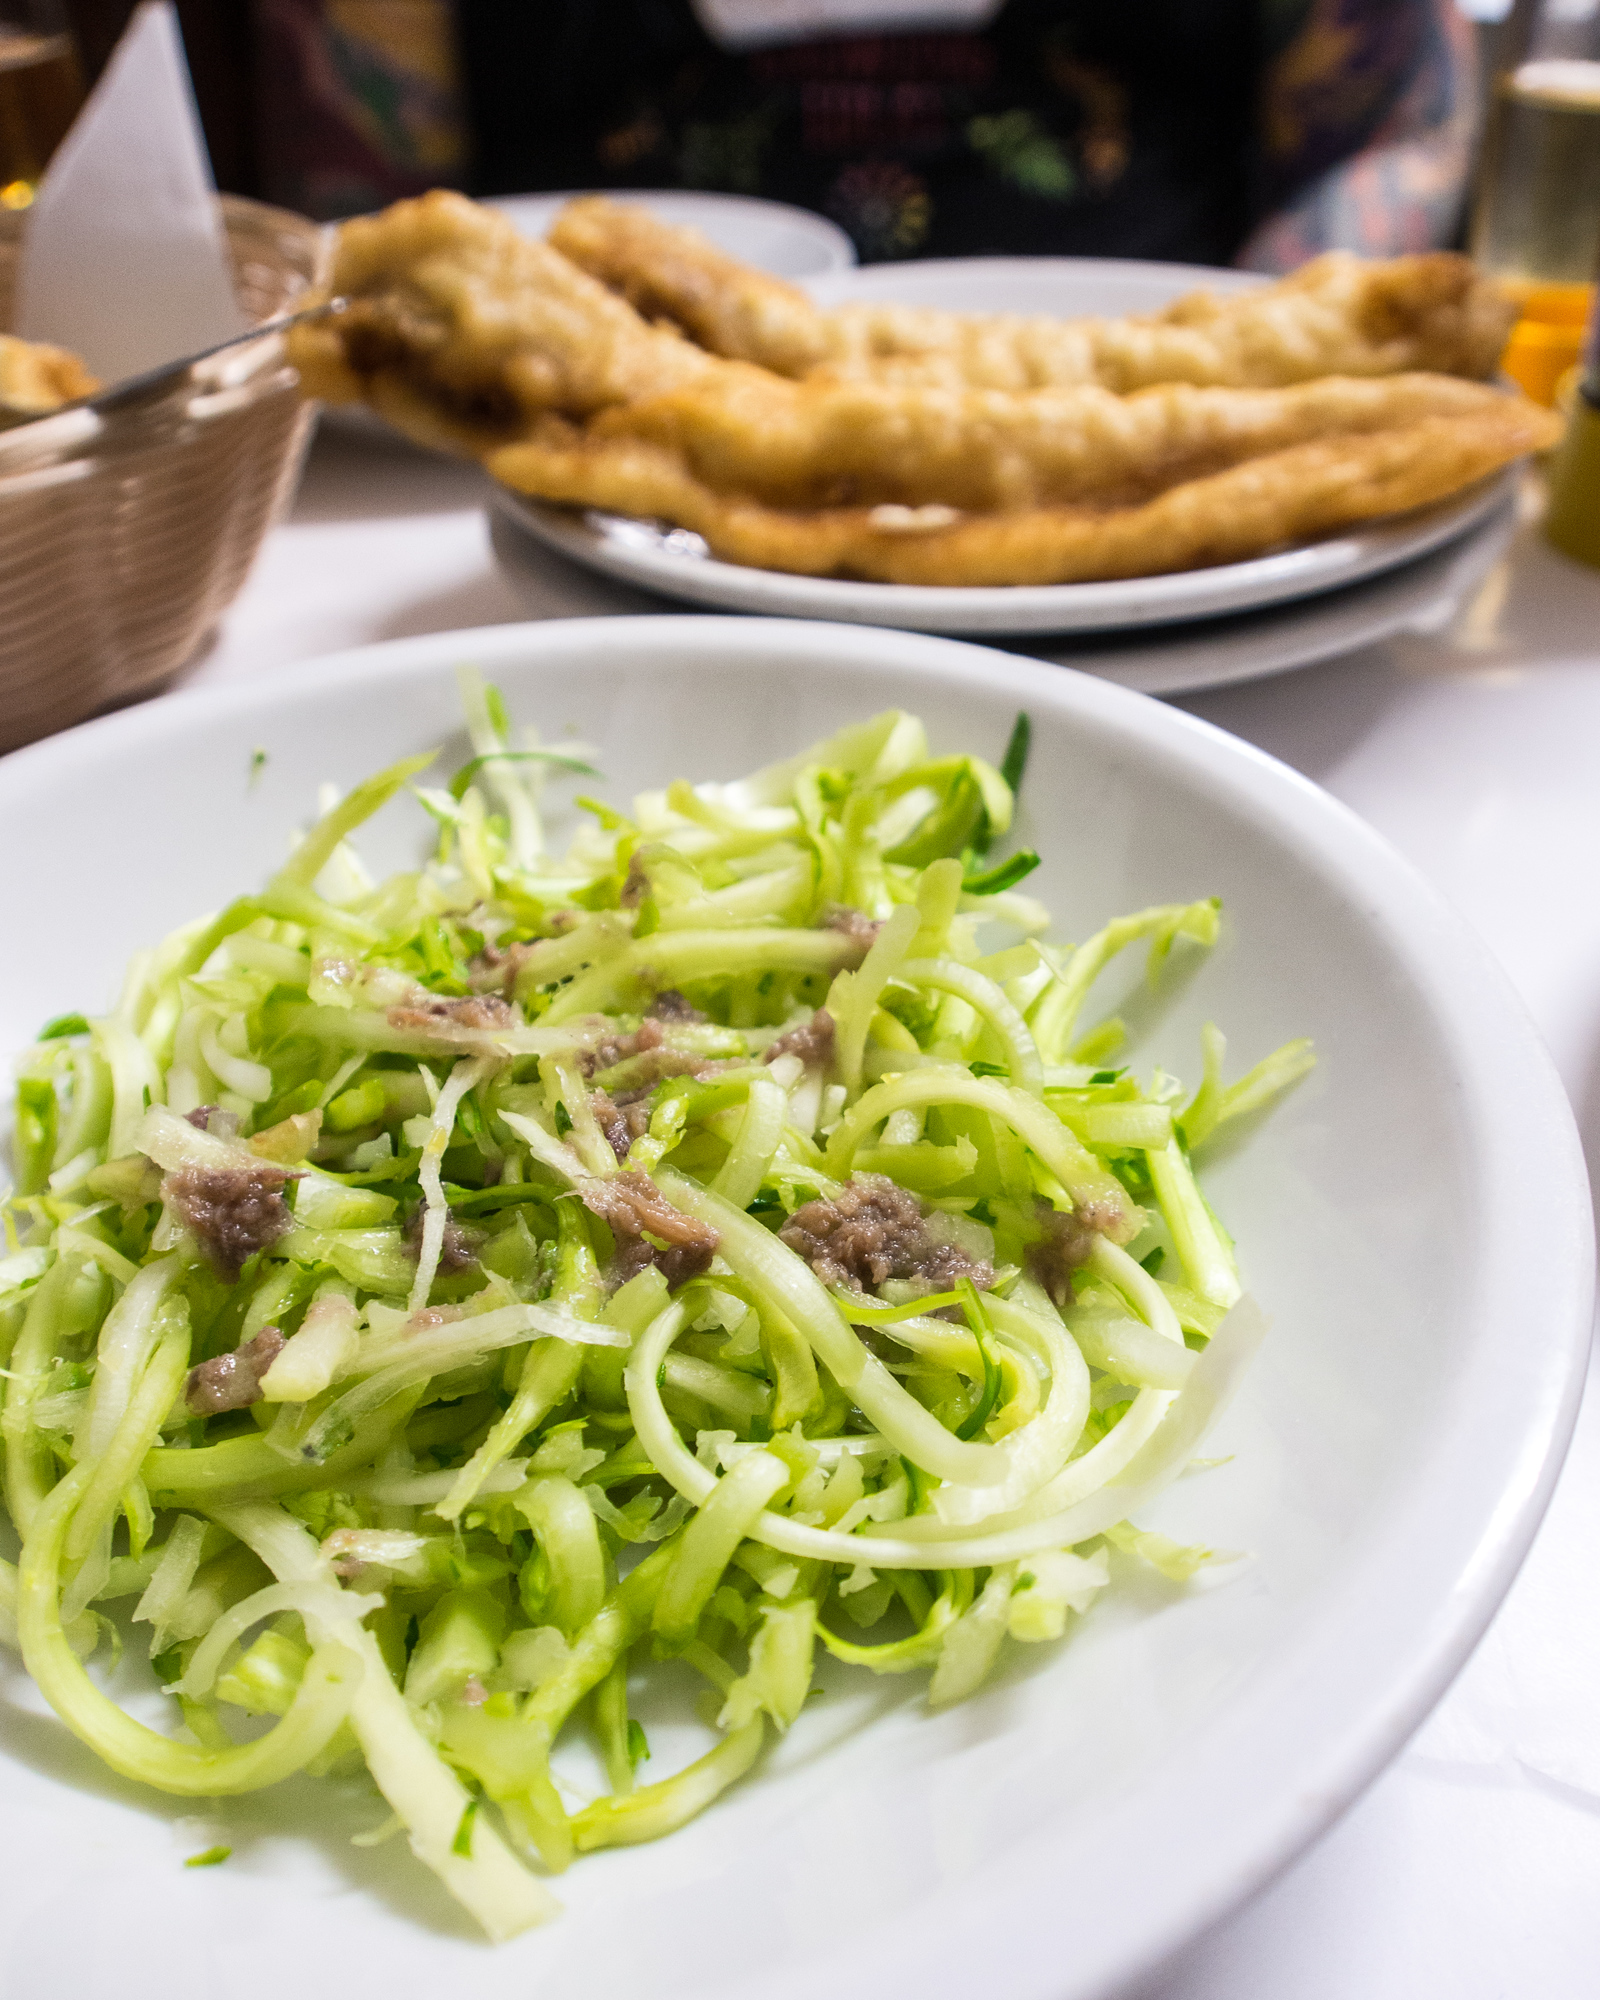 Puntarelle salad at Dar Filetto in Rome. This chicory salad is easy to make with less then 5 ingredients.